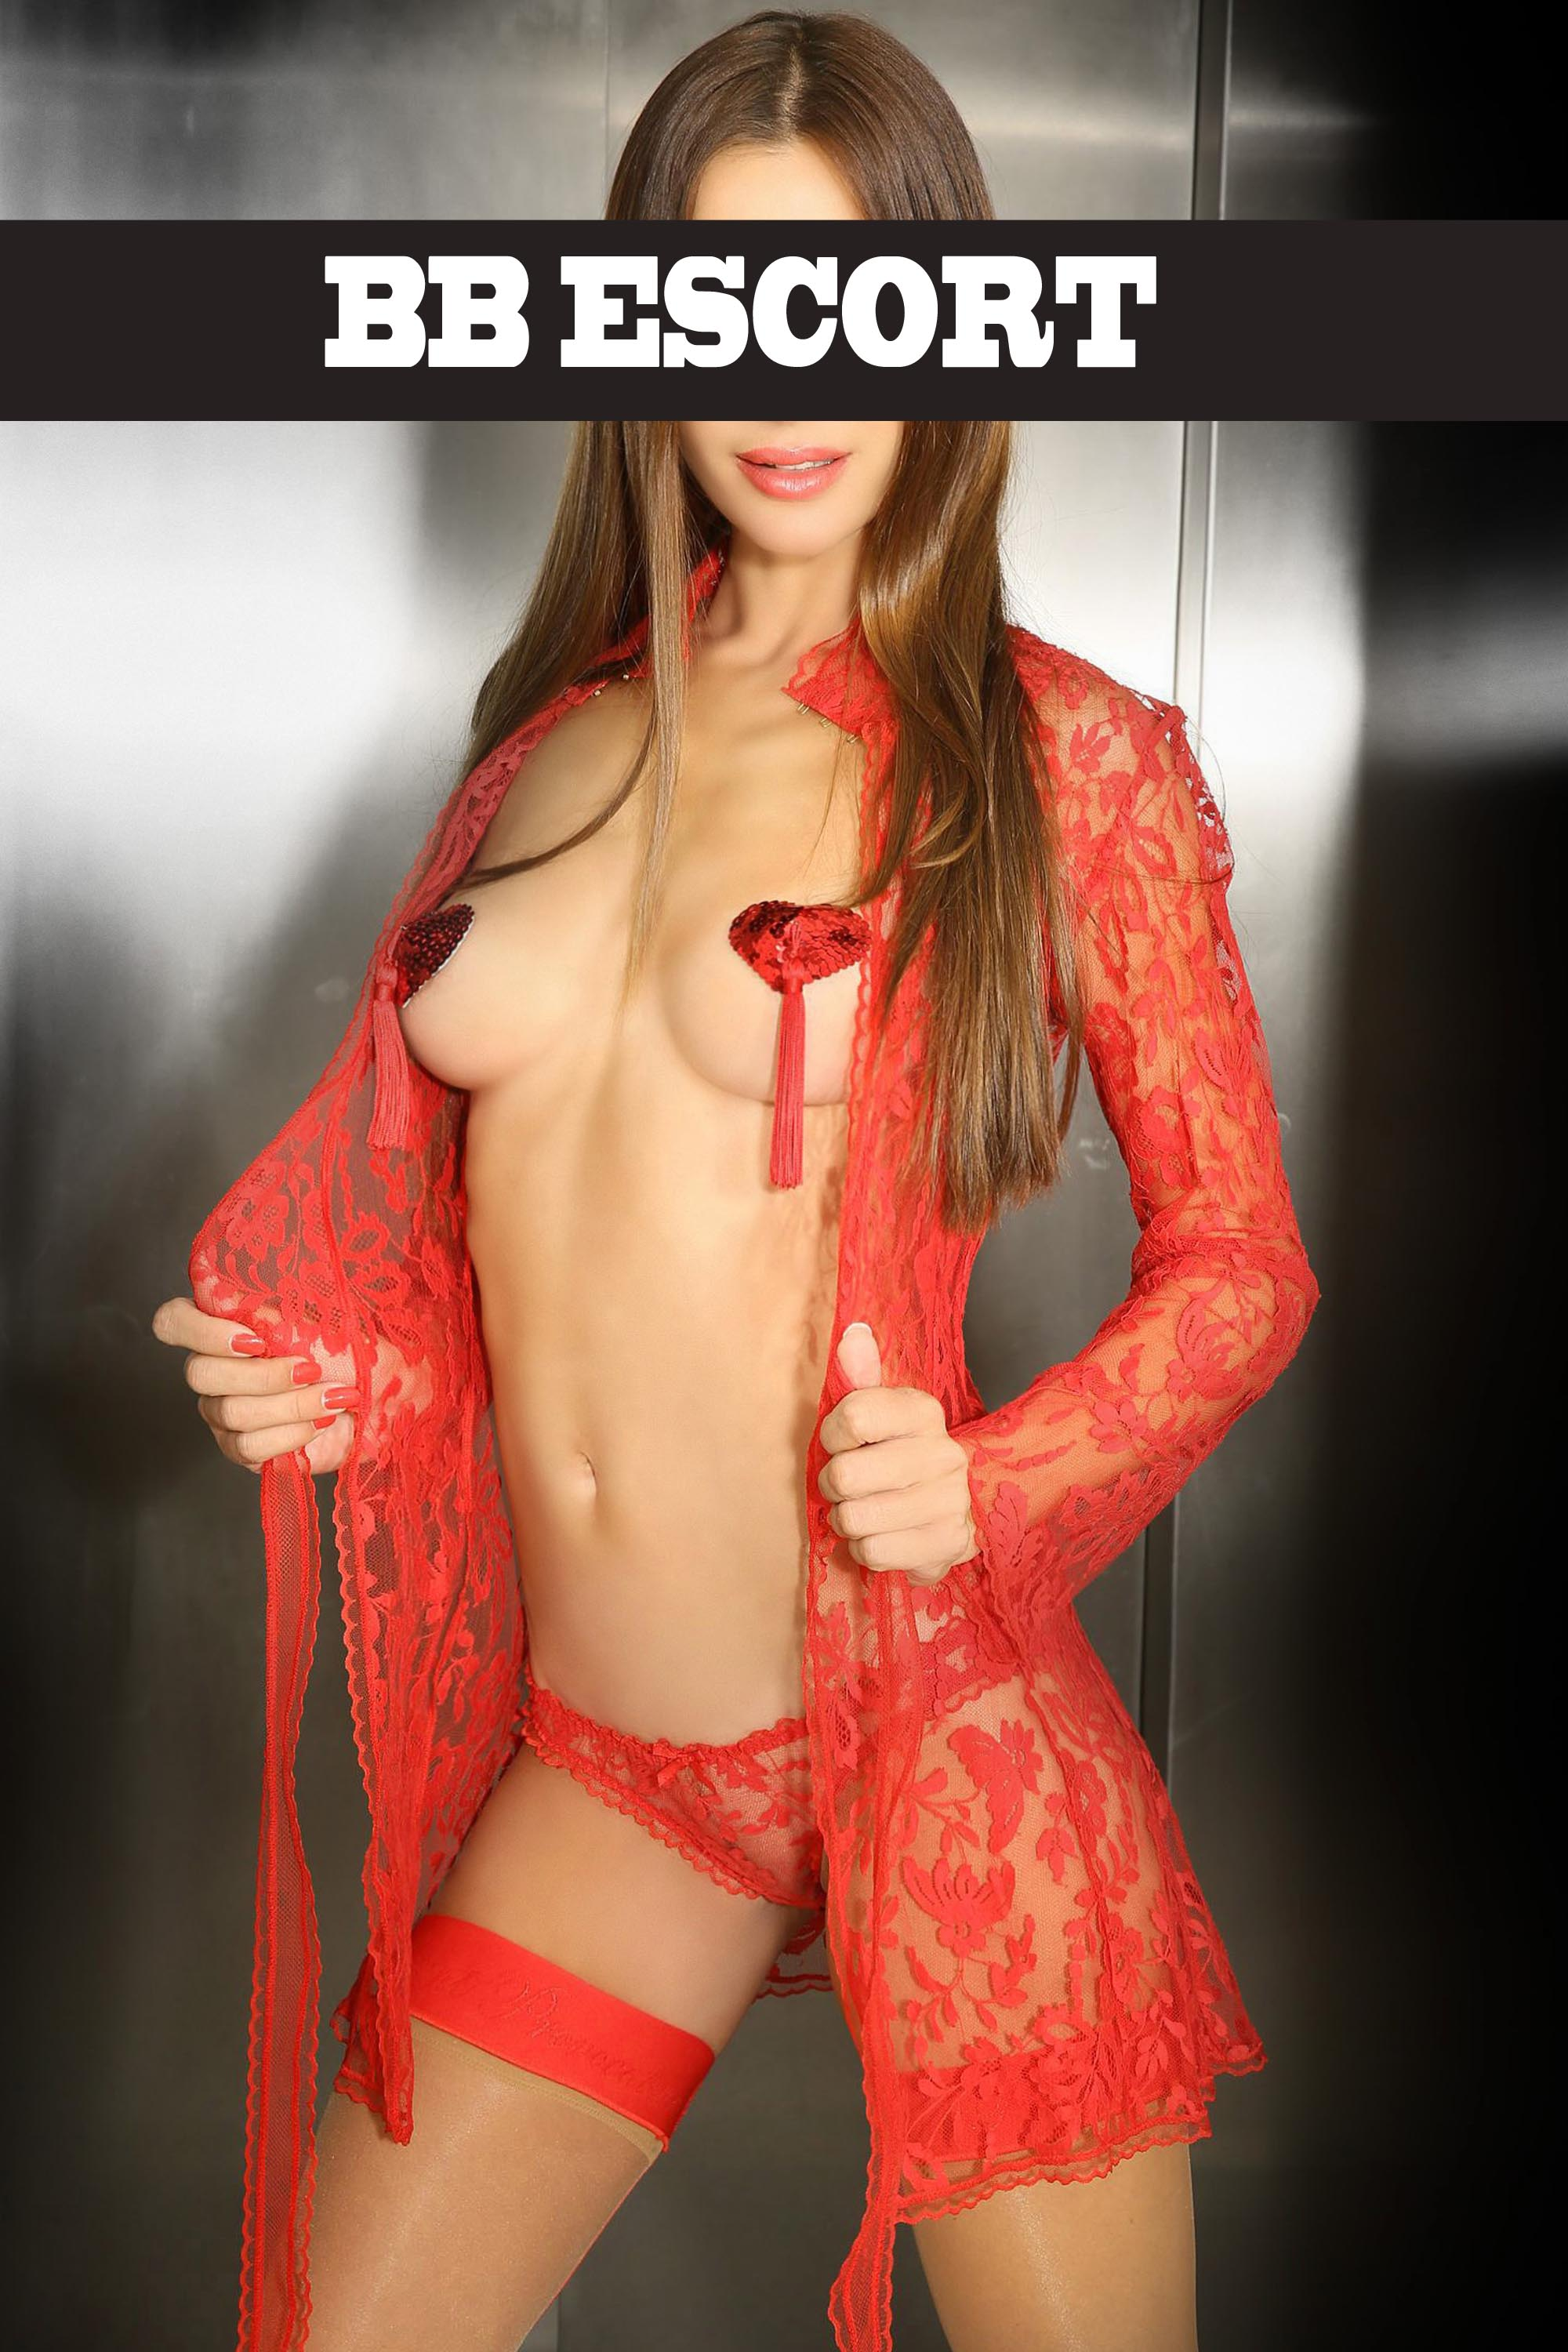 frankfurt independent escort